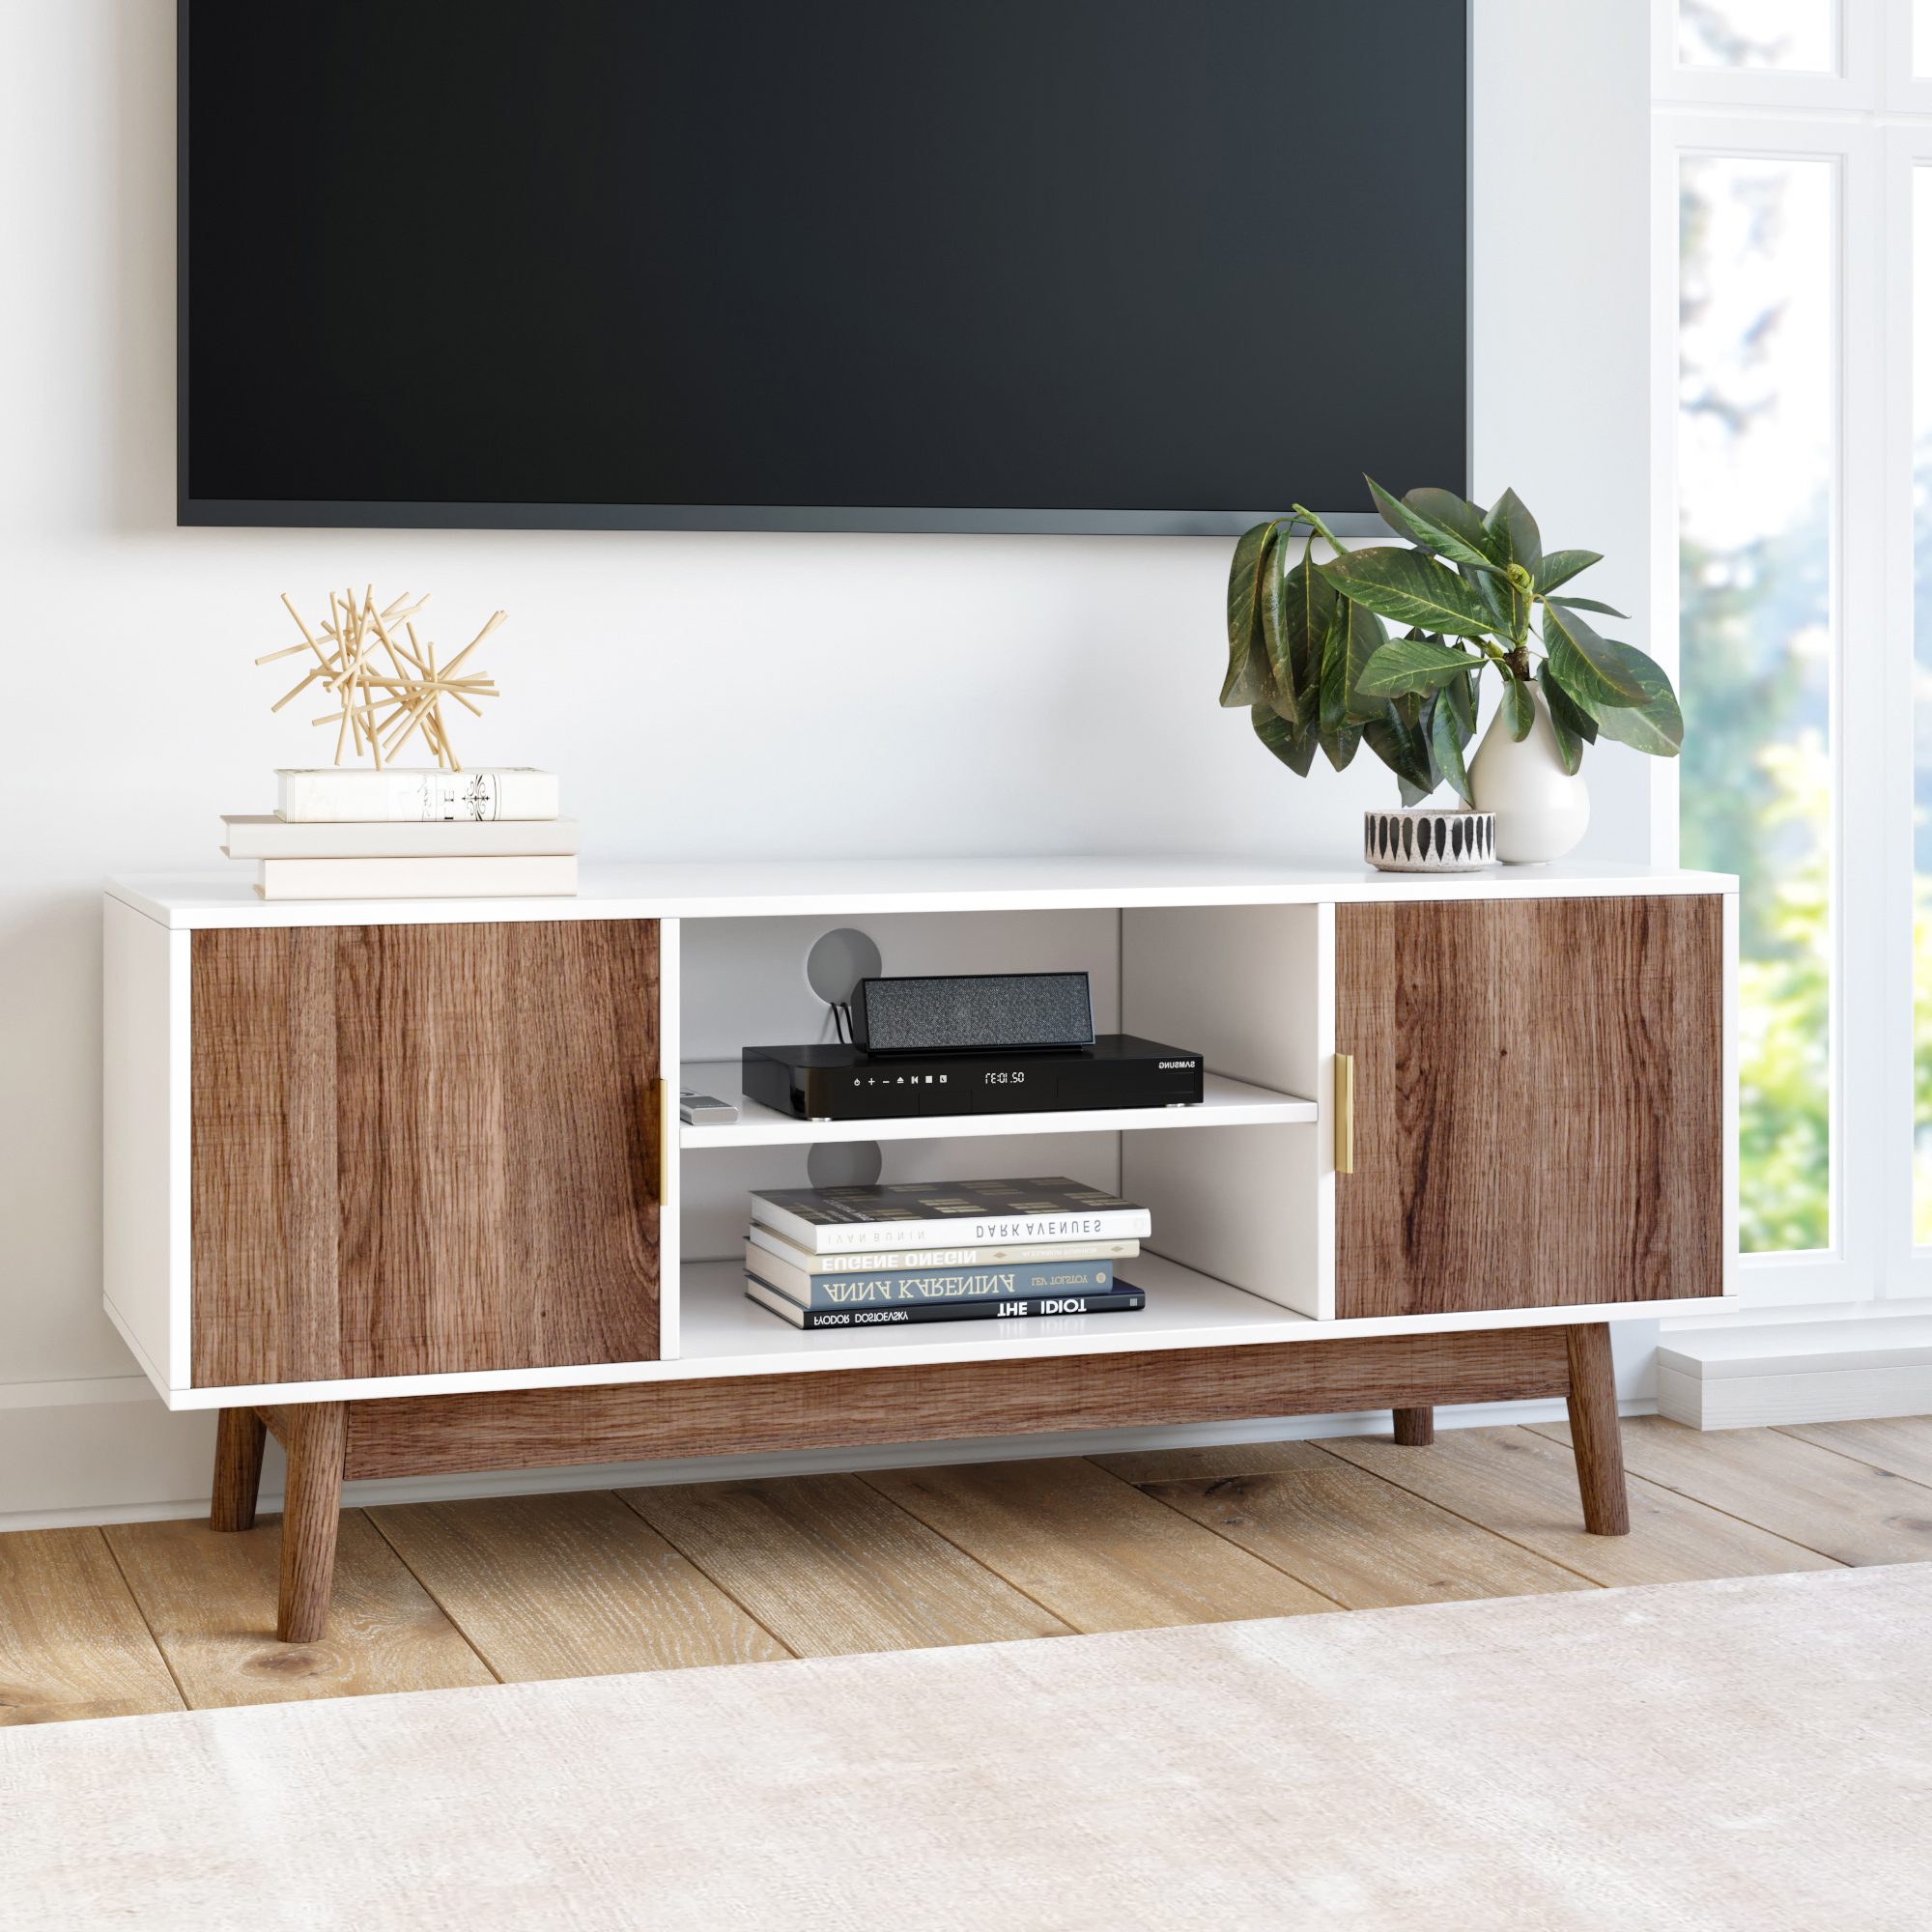 Most Popular Petter Tv Media Stands Intended For Nathan James Wesley Scandinavian Tv Stand Media Console (View 4 of 10)